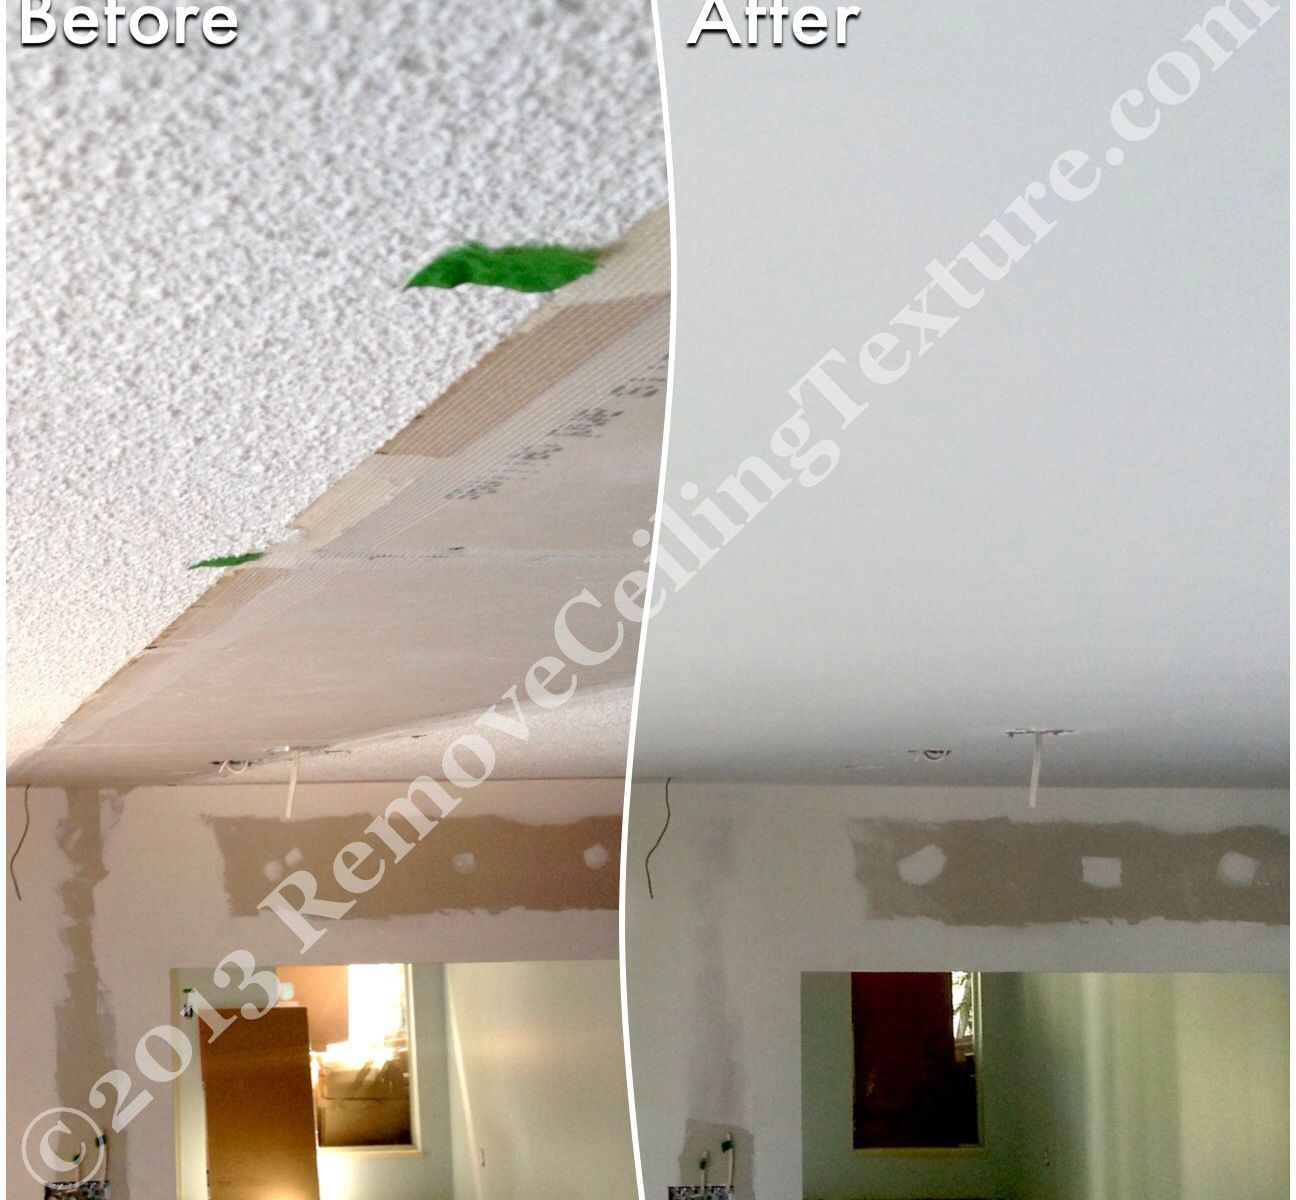 It's nearly impossible to match existing ceiling texture. The homeowners went with smooth ceilings instead.